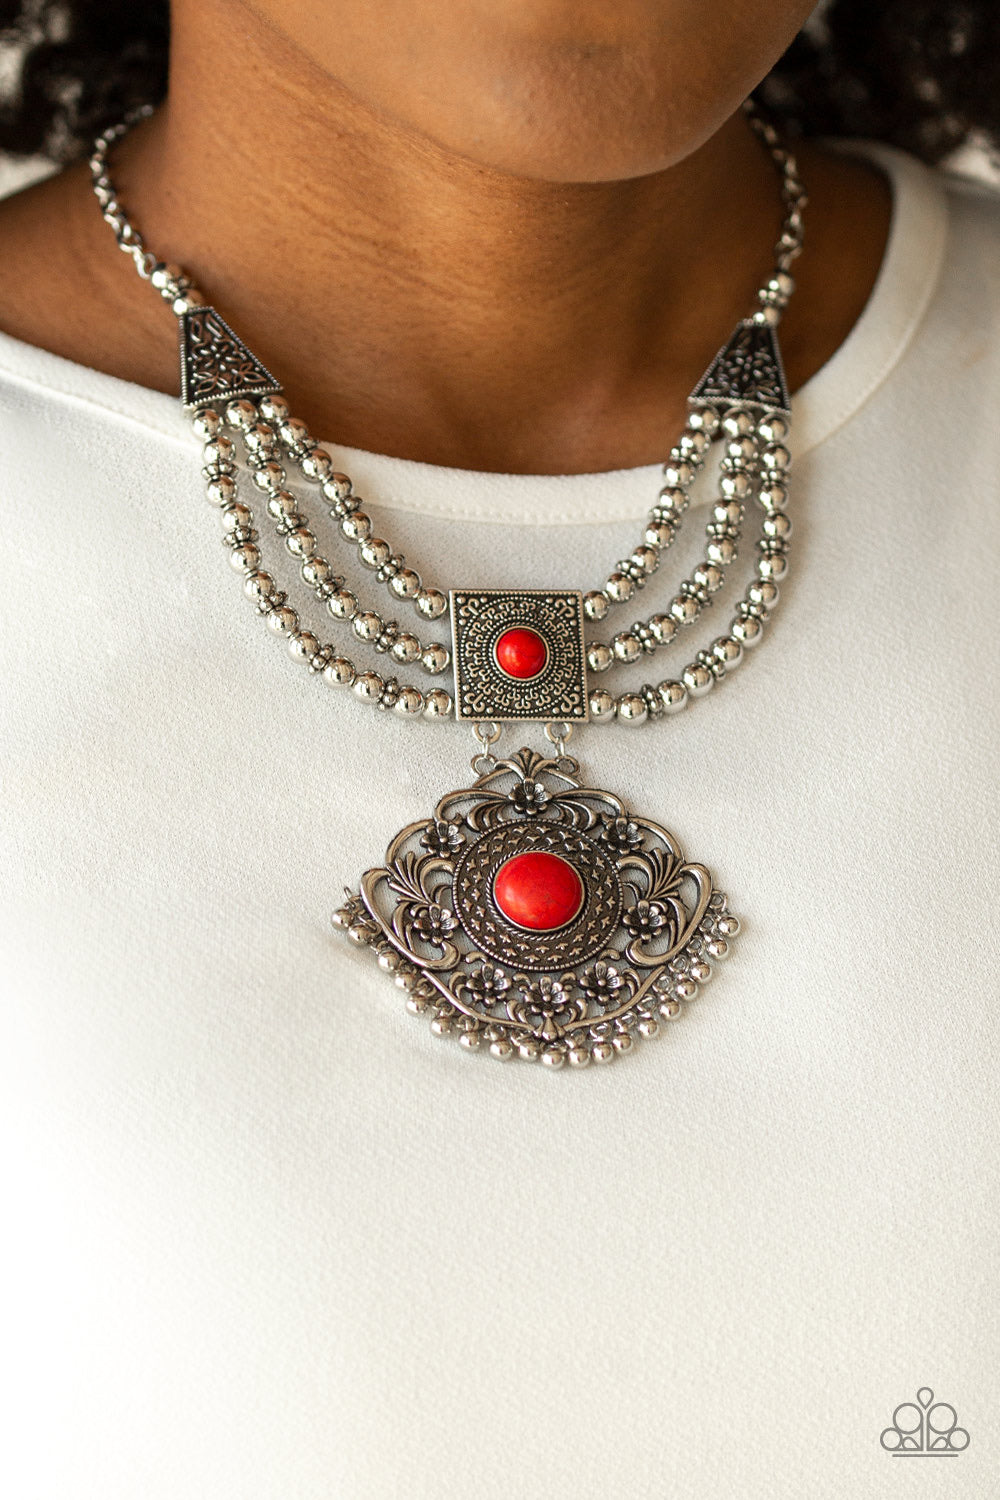 Paparazzi Jewelry Necklace Santa Fe Solstice - Red